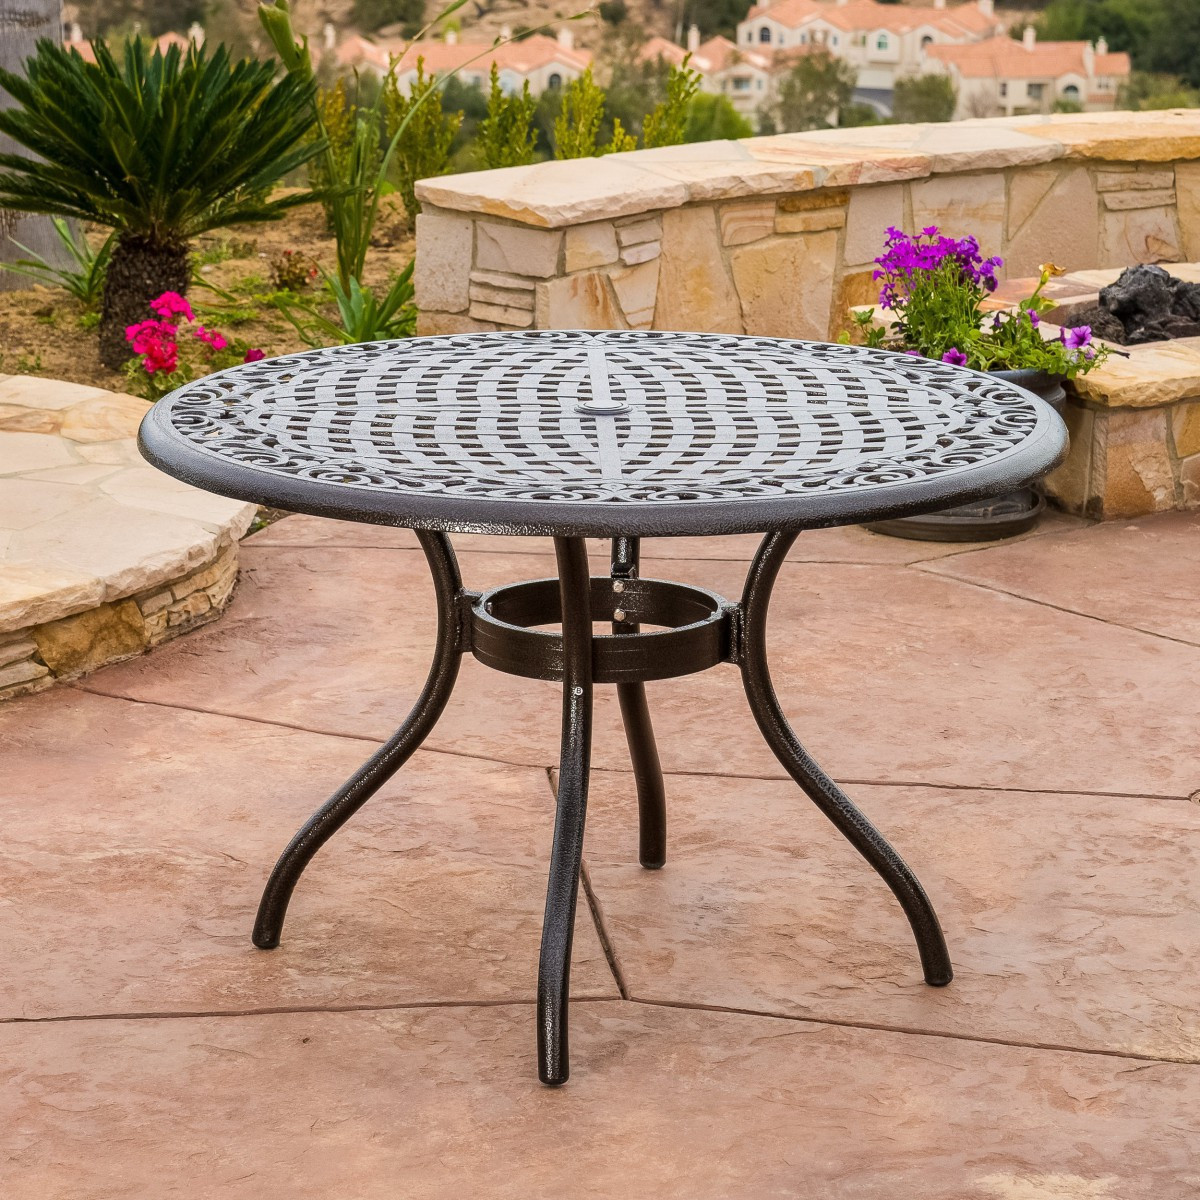 Best ideas about Round Patio Table . Save or Pin Covington Cast Aluminum 5 Piece Outdoor Dining Set with Now.